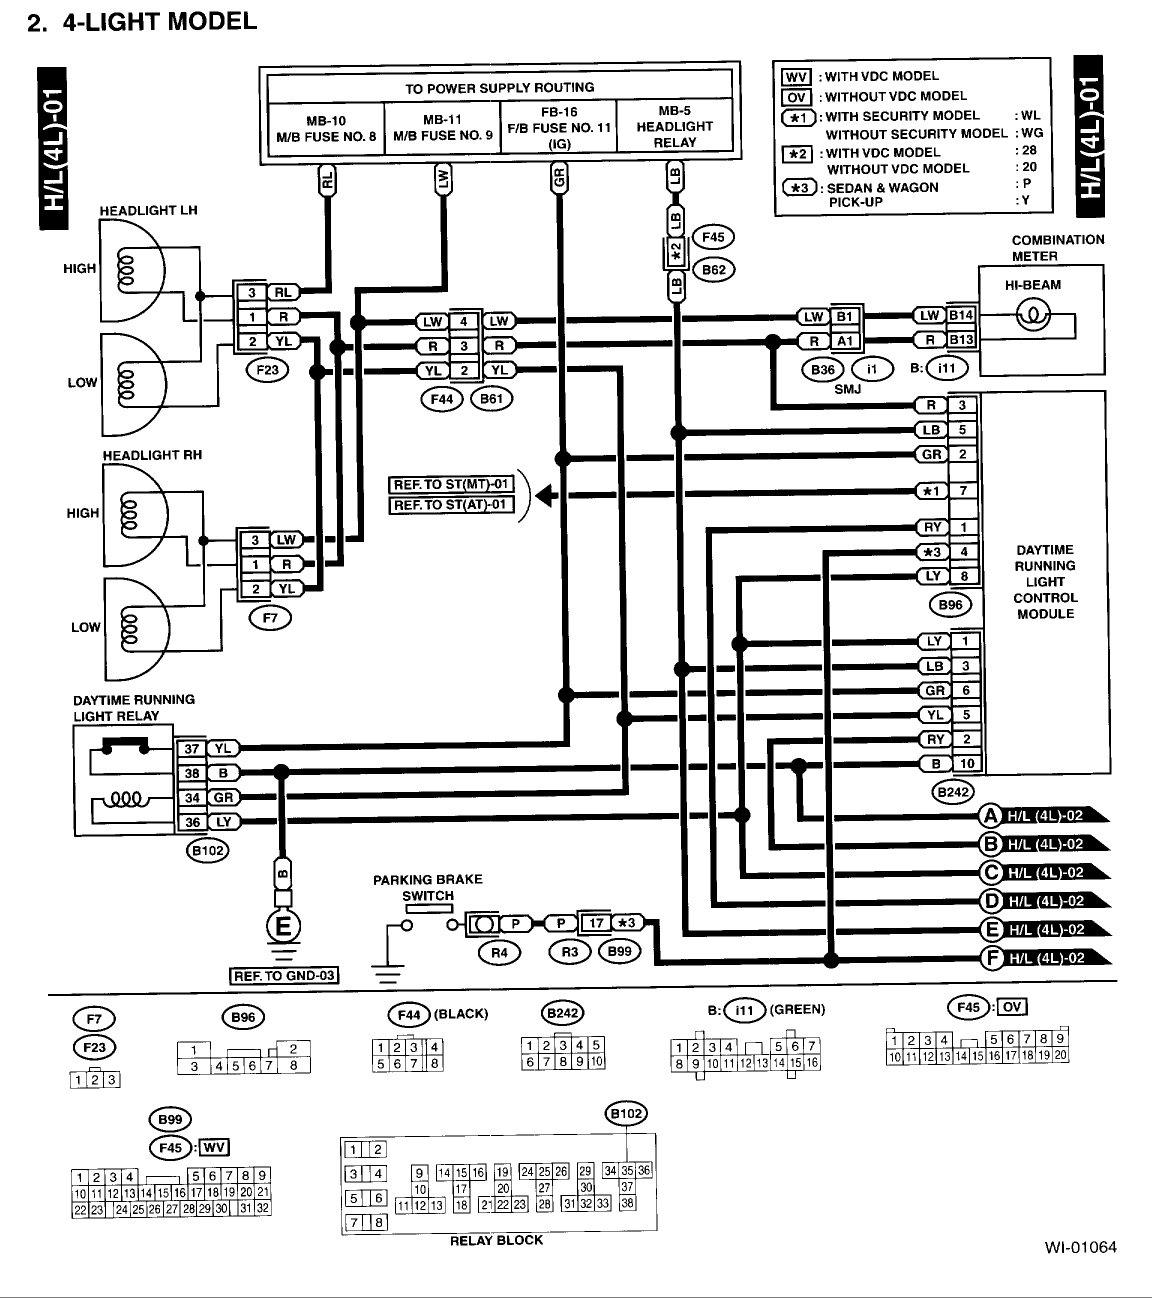 03 wrx headlight wiring diagram wiring diagram tutorial 2004 Subaru Wiring-Diagram 2003 wrx headlight wiring diagram wiring diagrams export2003 wrx headlight wiring diagram wiring library diagram h9